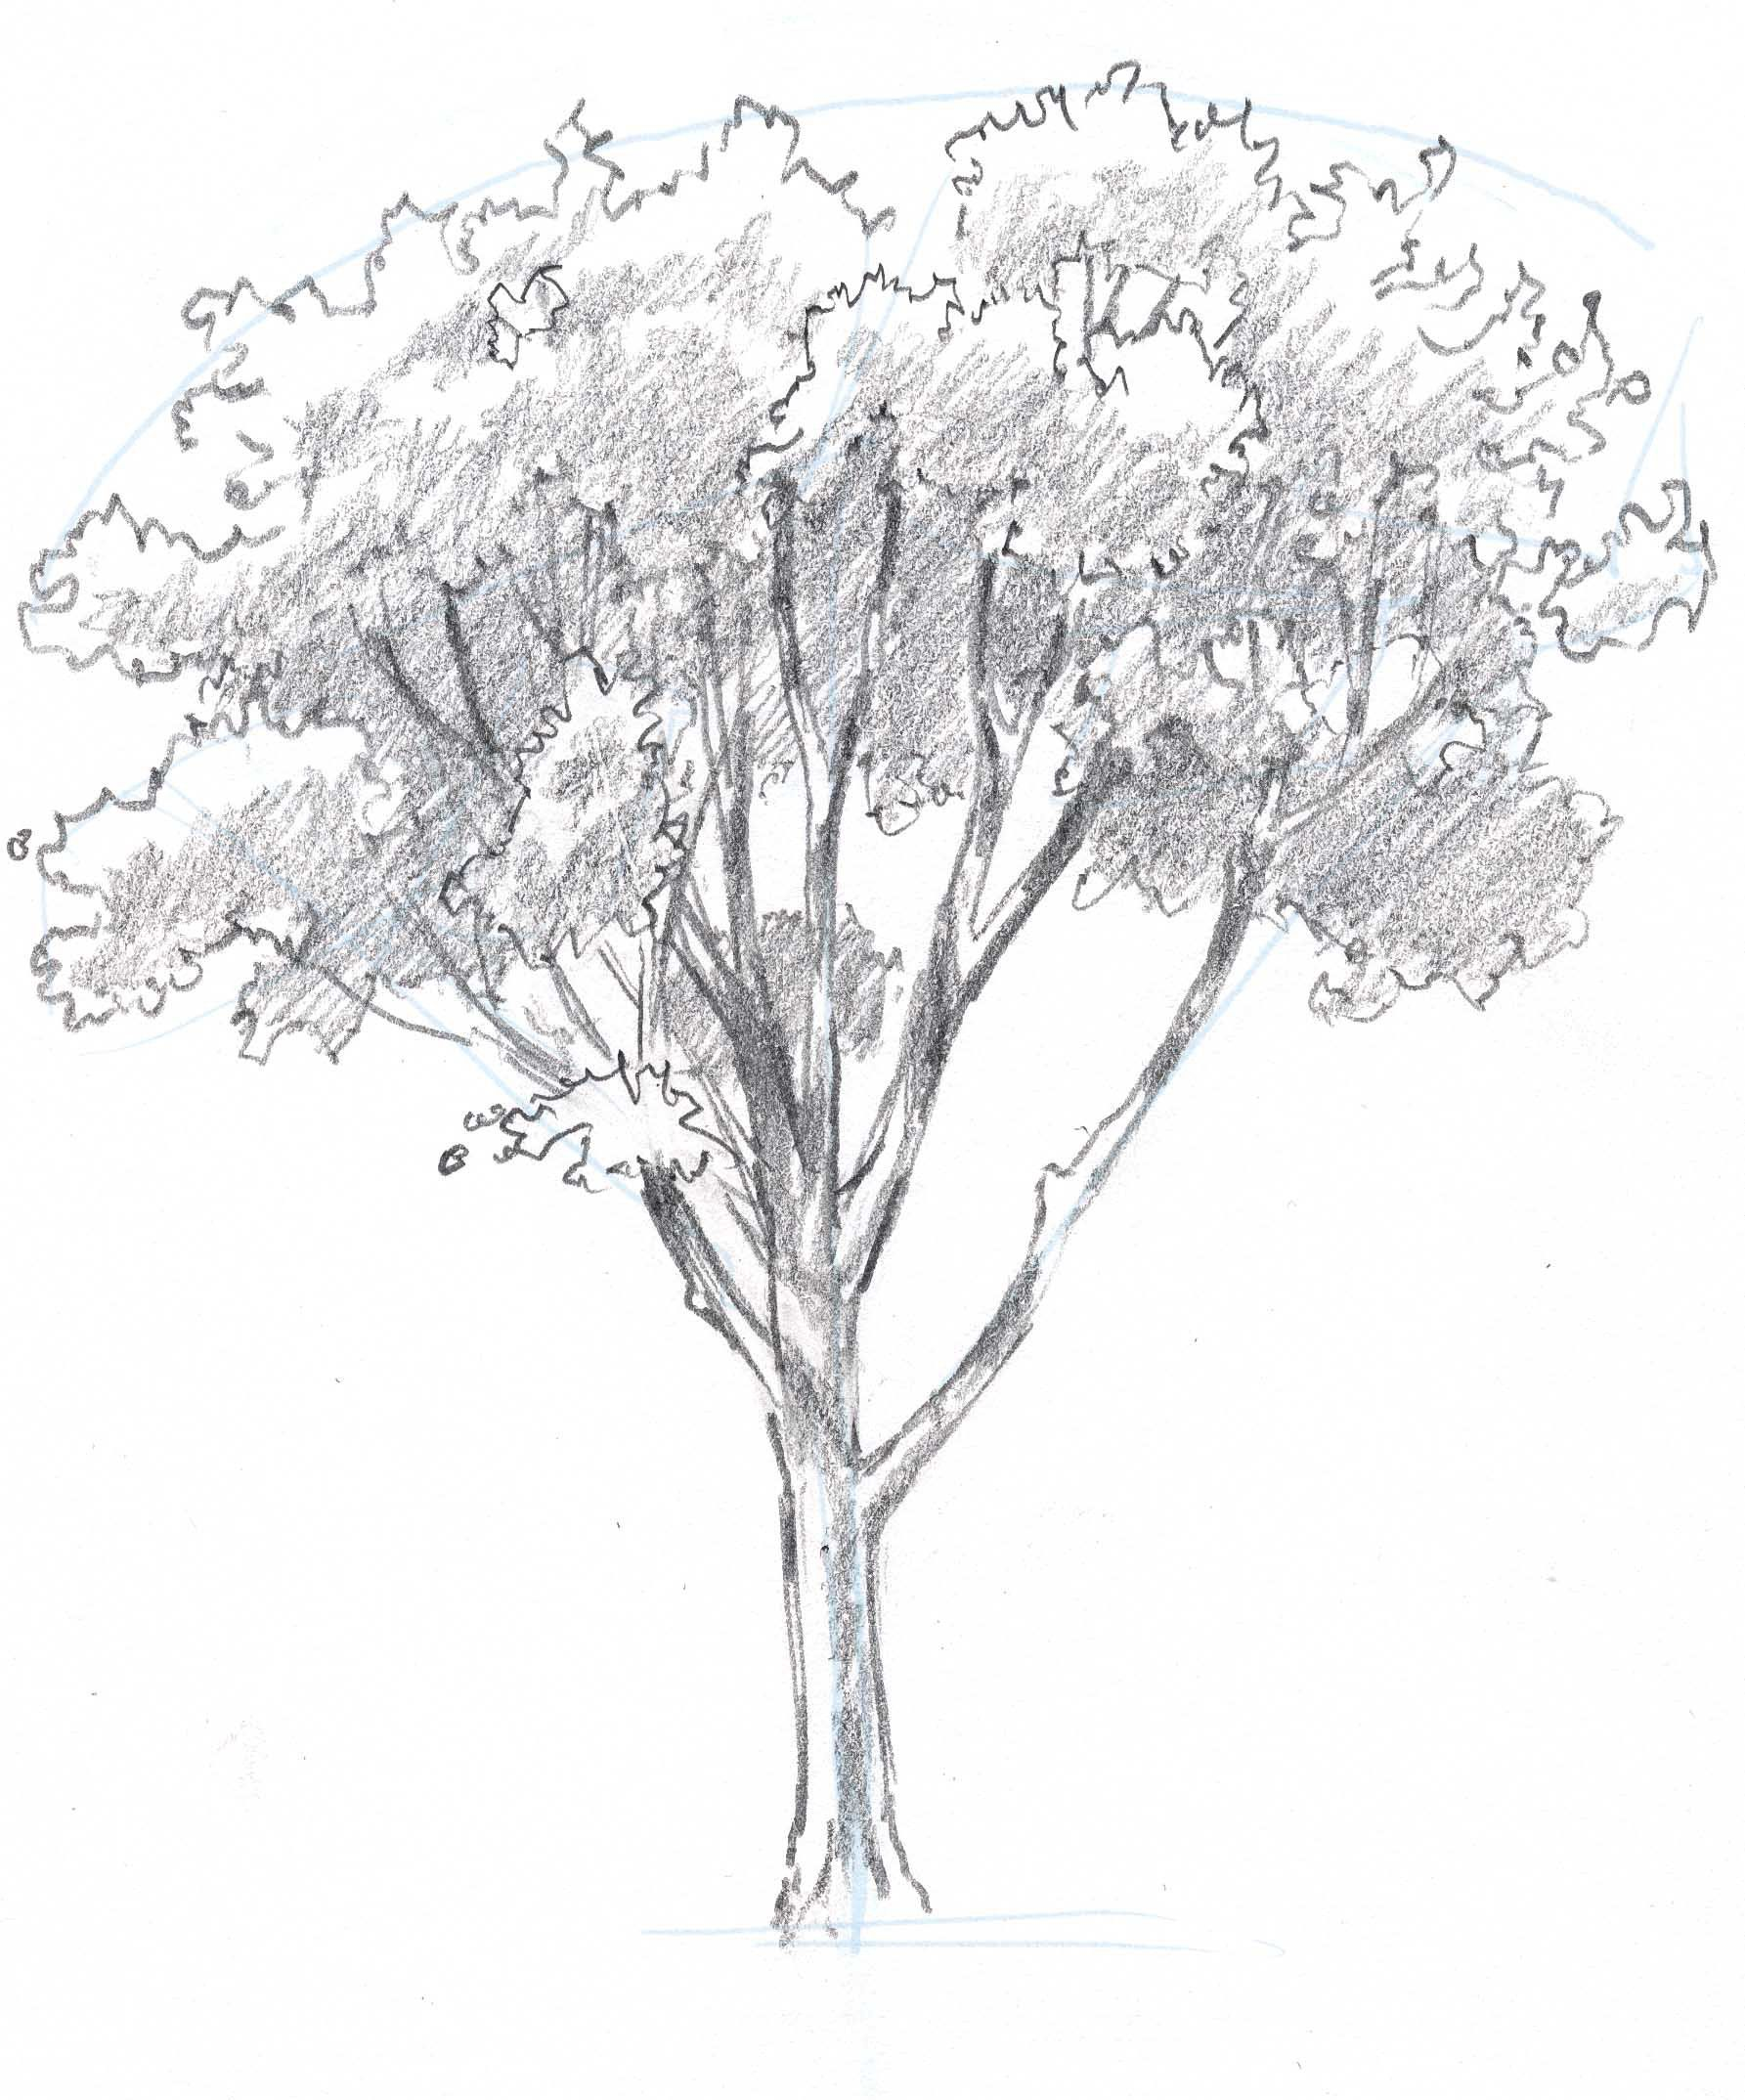 learn how to draw trees in this simple step by step